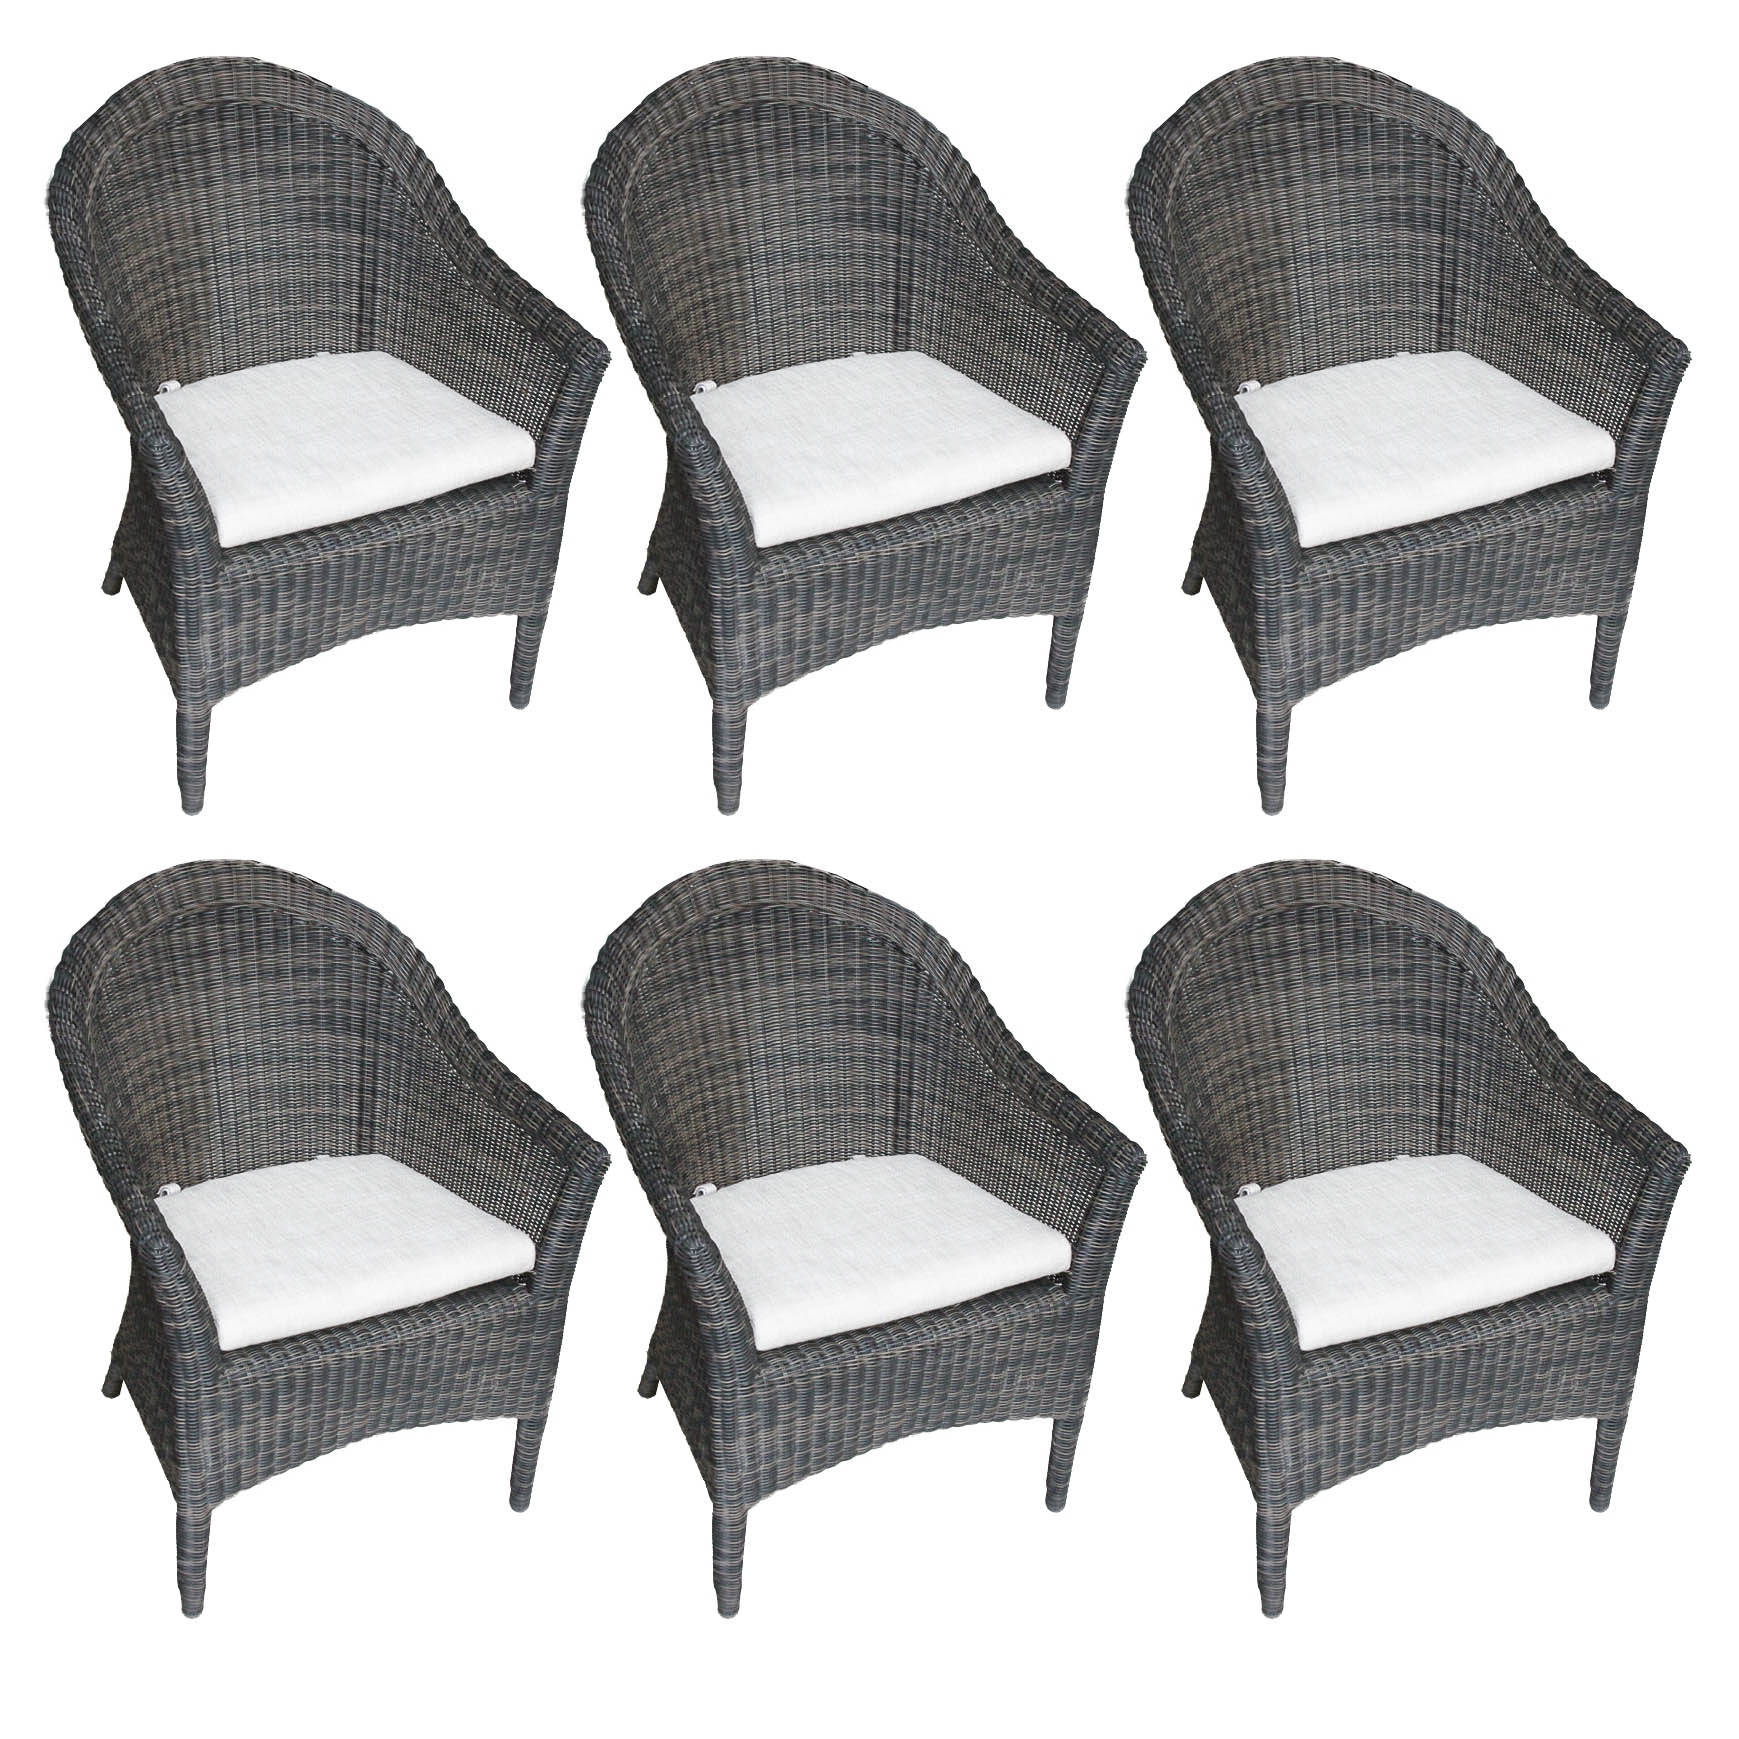 Set of Smith & Hawken Outdoor Patio Chairs